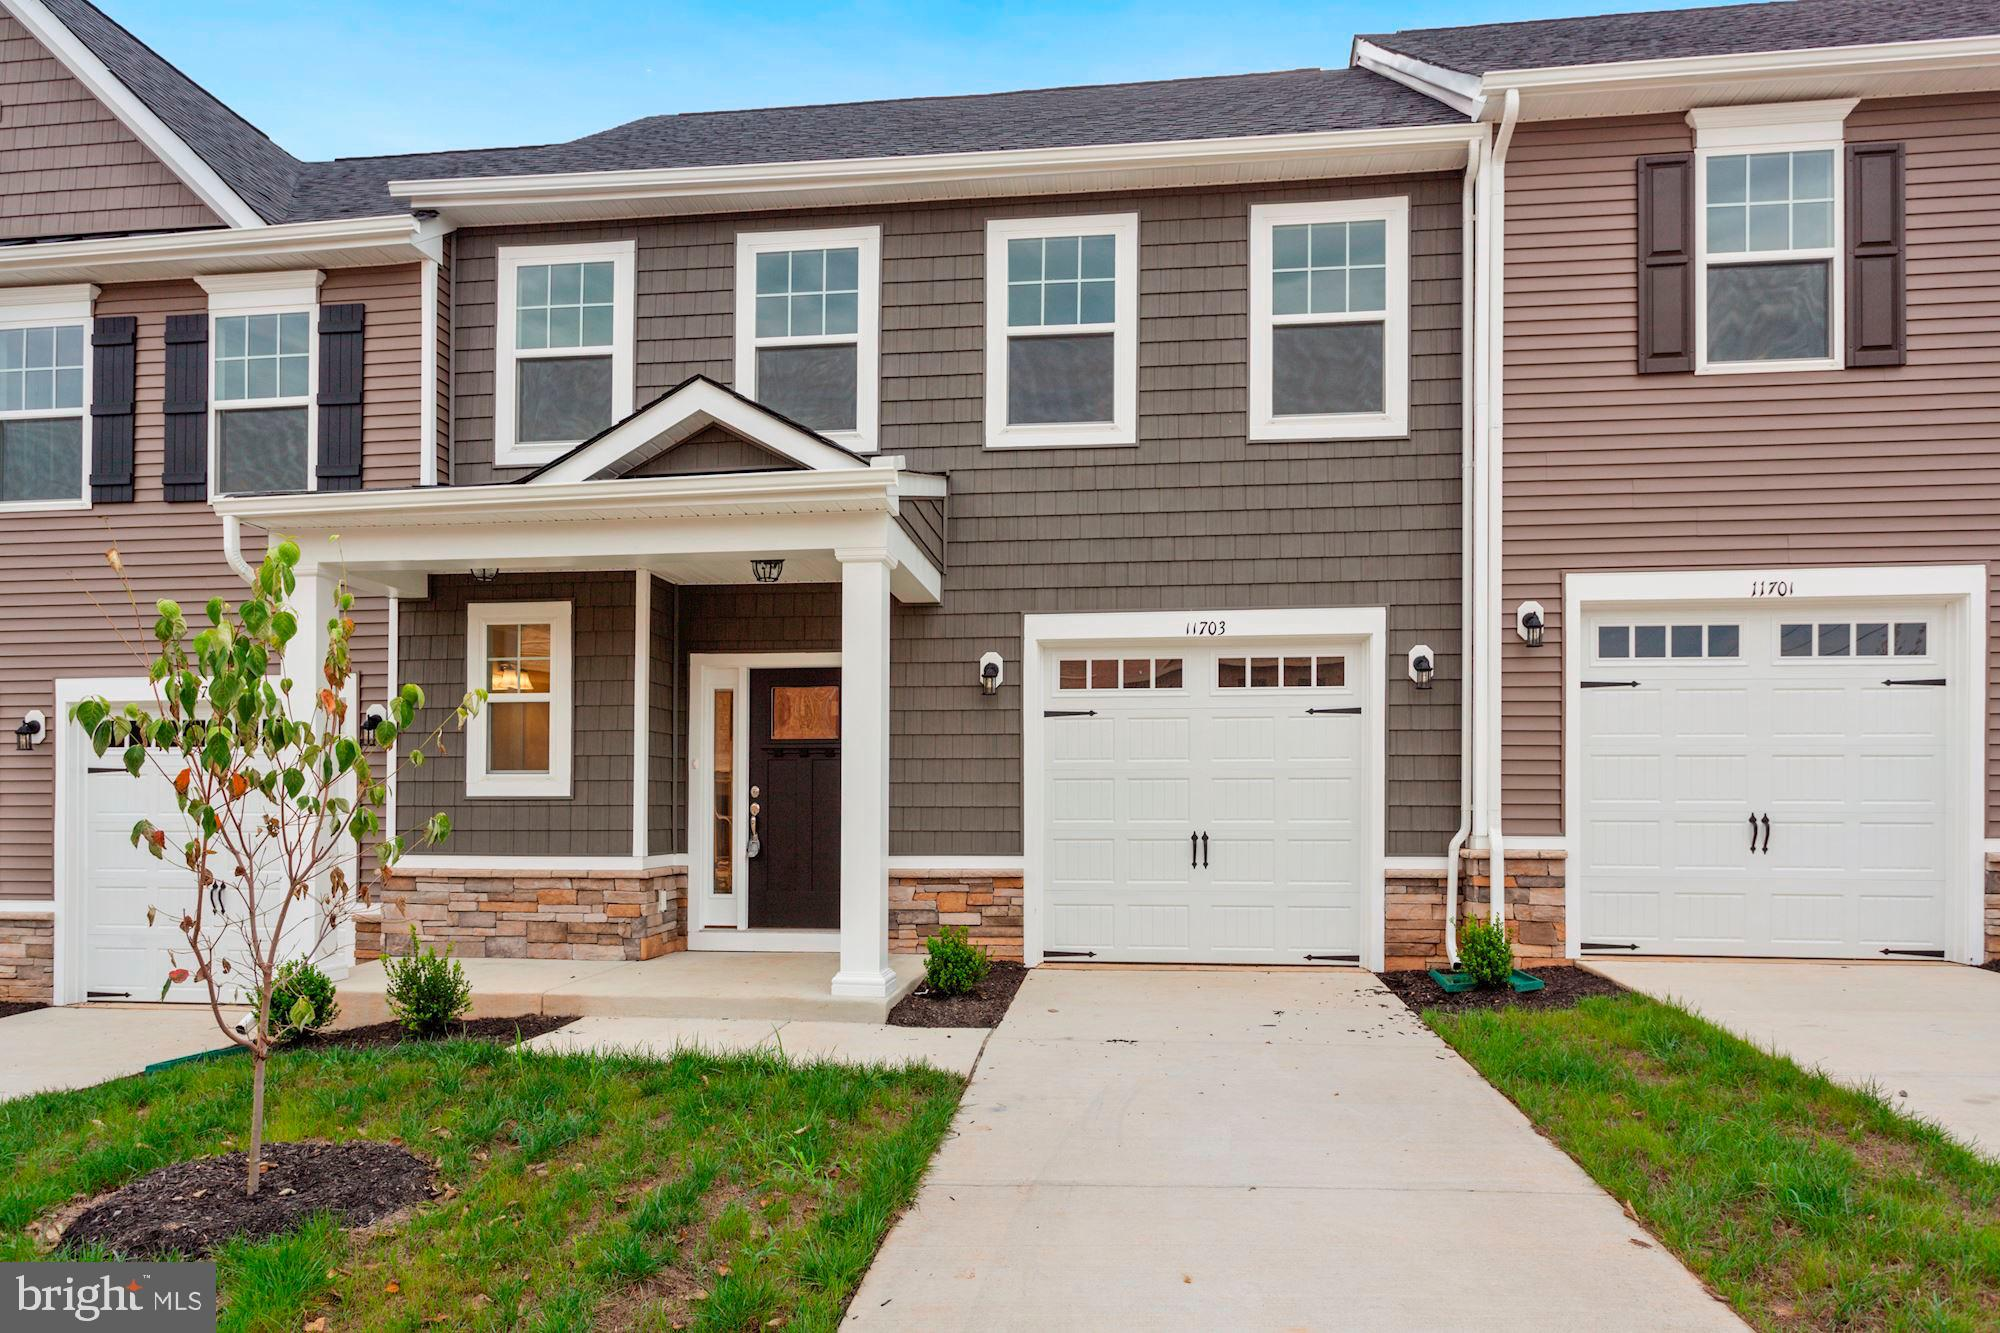 """Fabulous New 55+ Community just minutes from """"Everything Fredericksburg""""! You will LOVE our new Boutique Community. We have Open, Modern, """"Main Floor Living"""" Floorplans that appeal to everyone! We only have 45 Home sites so you will need to make an appt sooner than later! Our Dogwood model is 1760 square feet. Every inch is usable and makes sense! This home is to deliver in December 2020. Our standards include: Stainless Steel Appliances, Gas Heat and Cooking, Gas Fireplace, Ceramic Primary Bath flooring and Shower, Granite Counters in the Kitchen , the list goes on! JGH Building & Consulting has a reputation for attention to detail, you will notice the difference when you tour our homes! https://carmichaelphotovideo.gofullframe.com/ut/Salem_Church.html"""